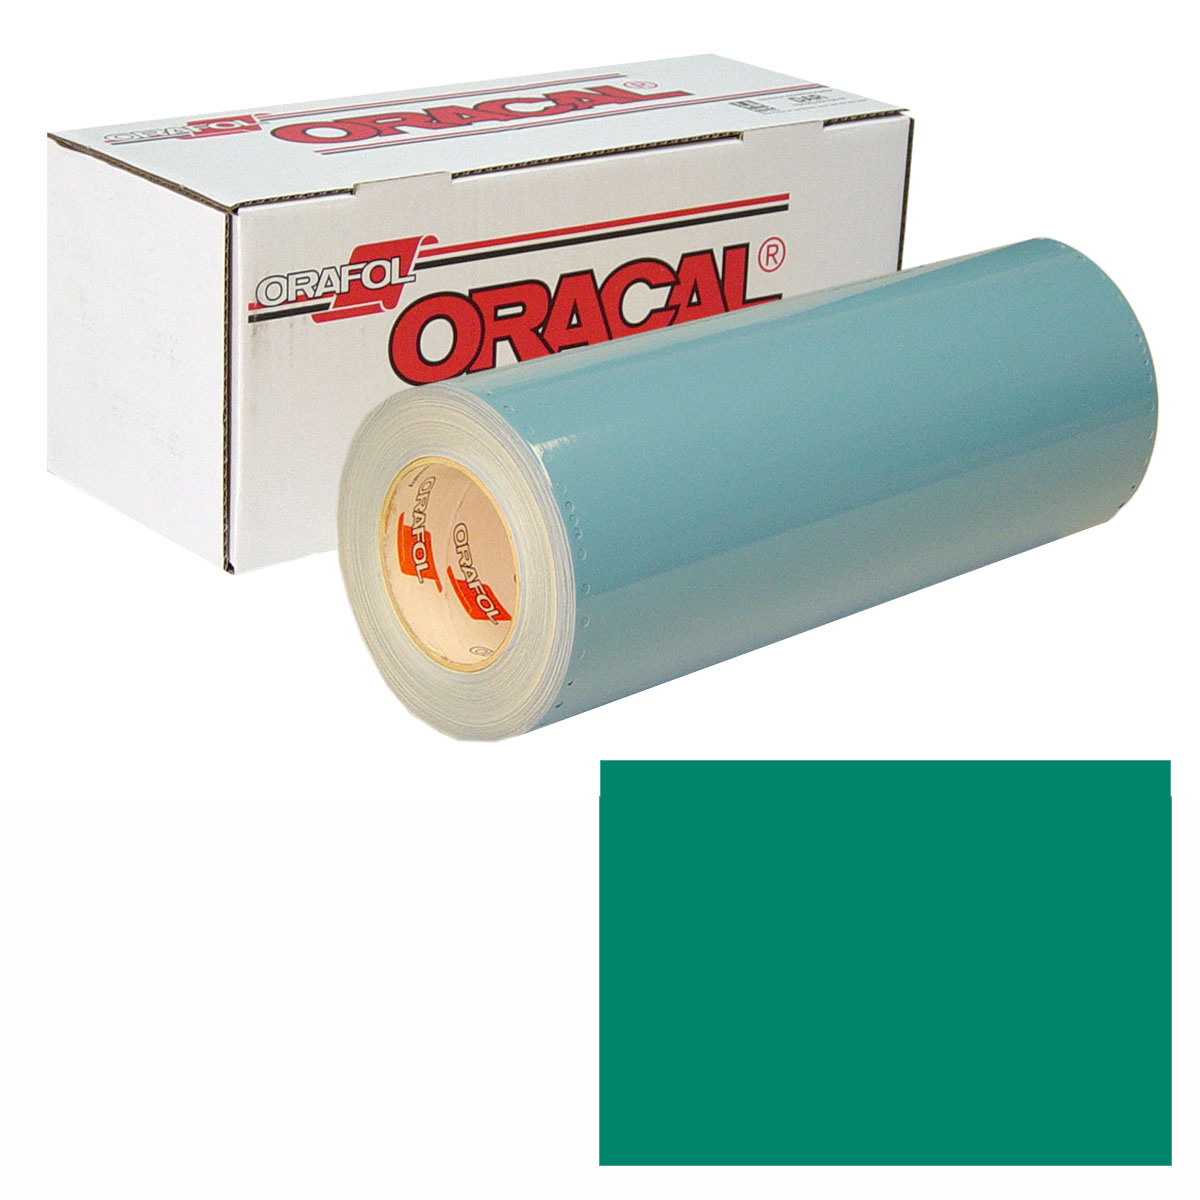 ORACAL 751 15in X 50yd 607 Turquoise Green